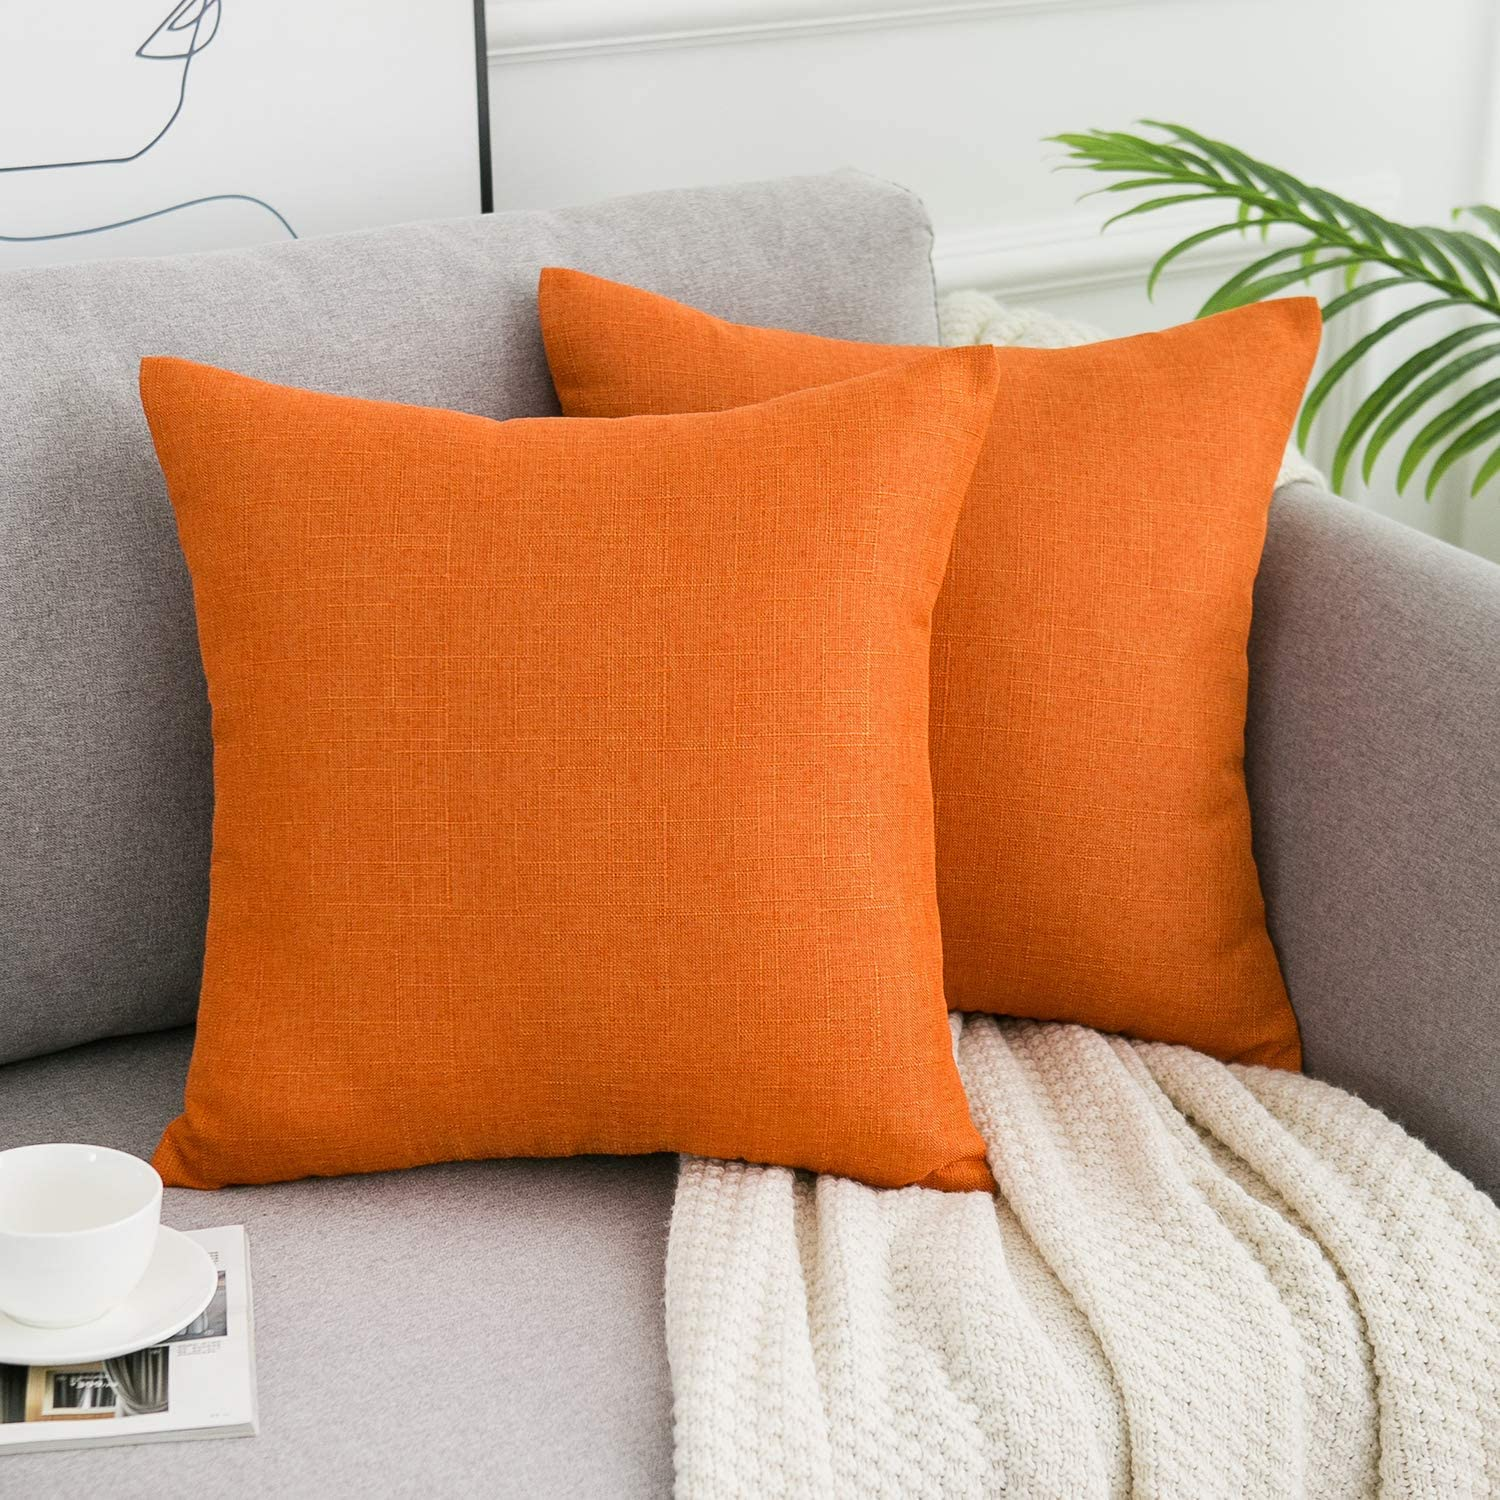 WLNUI Orange Pillow Covers Decorative Square Throw Pillow Covers Cotton Linen Cushion Case for Sofa Couch Home Farmhouse Decor 18x18 Inches